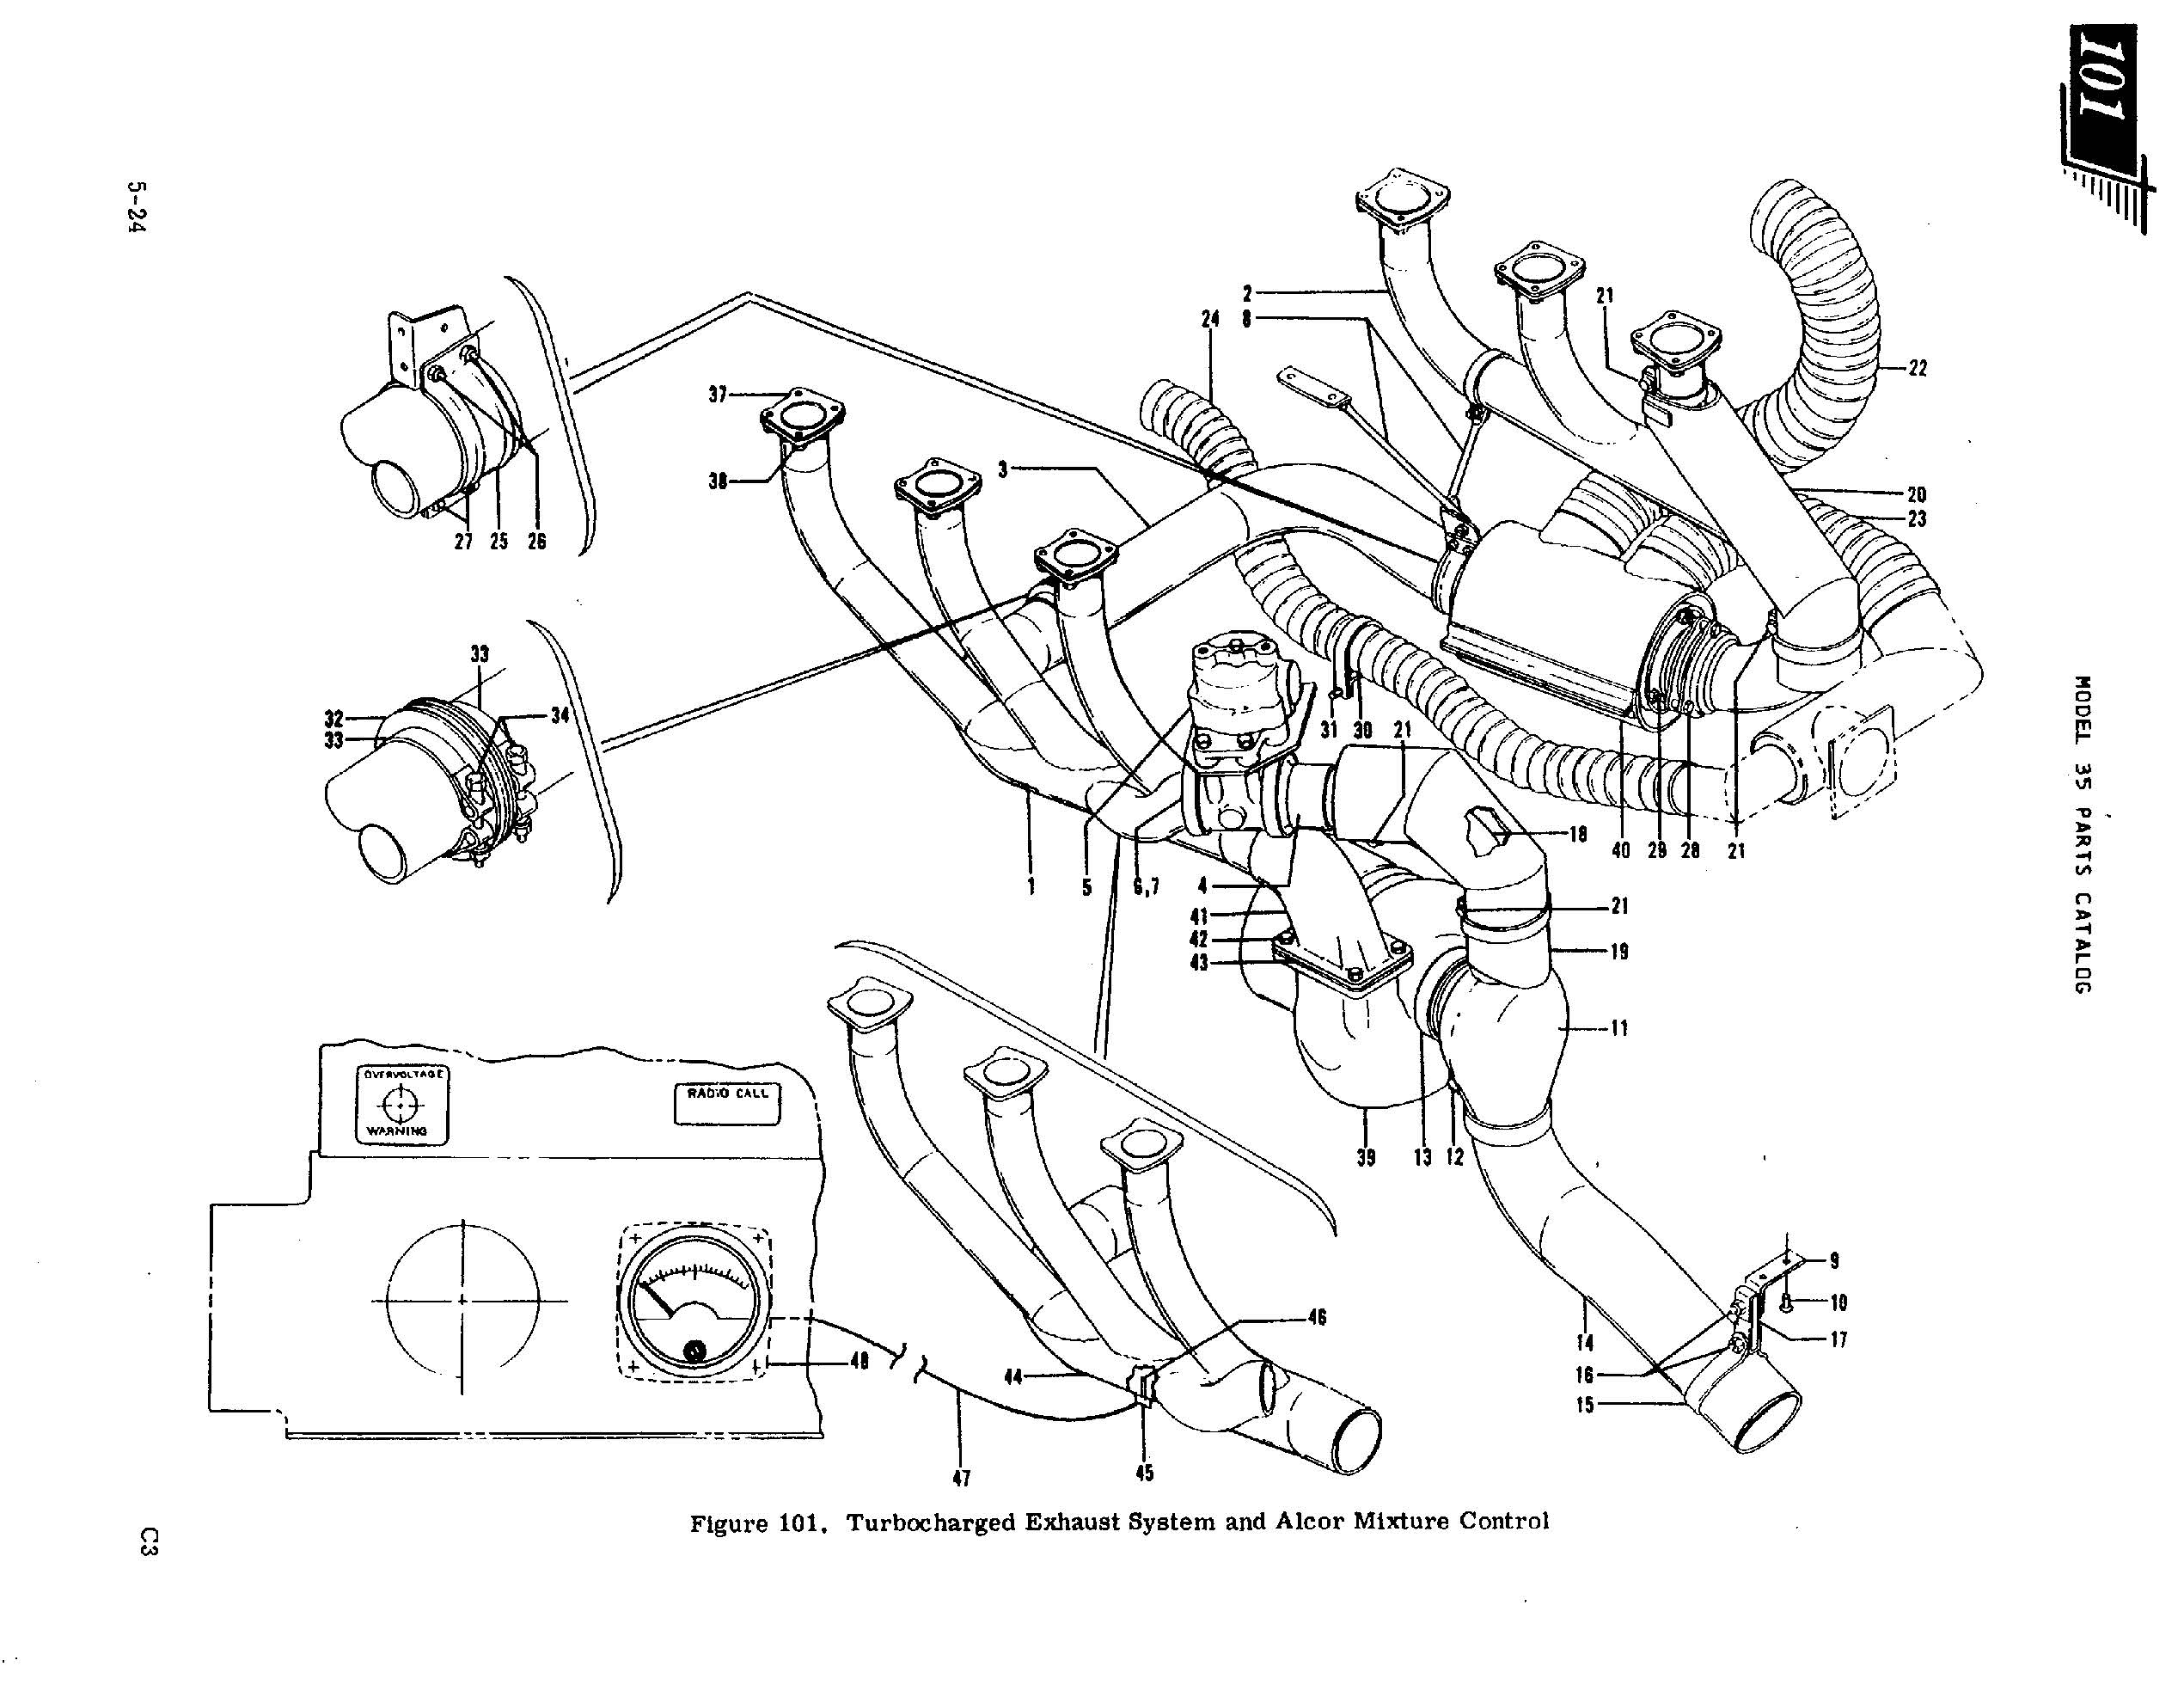 Autoloc Flamethrower Kit Wiring Diagram E36 Exhaust